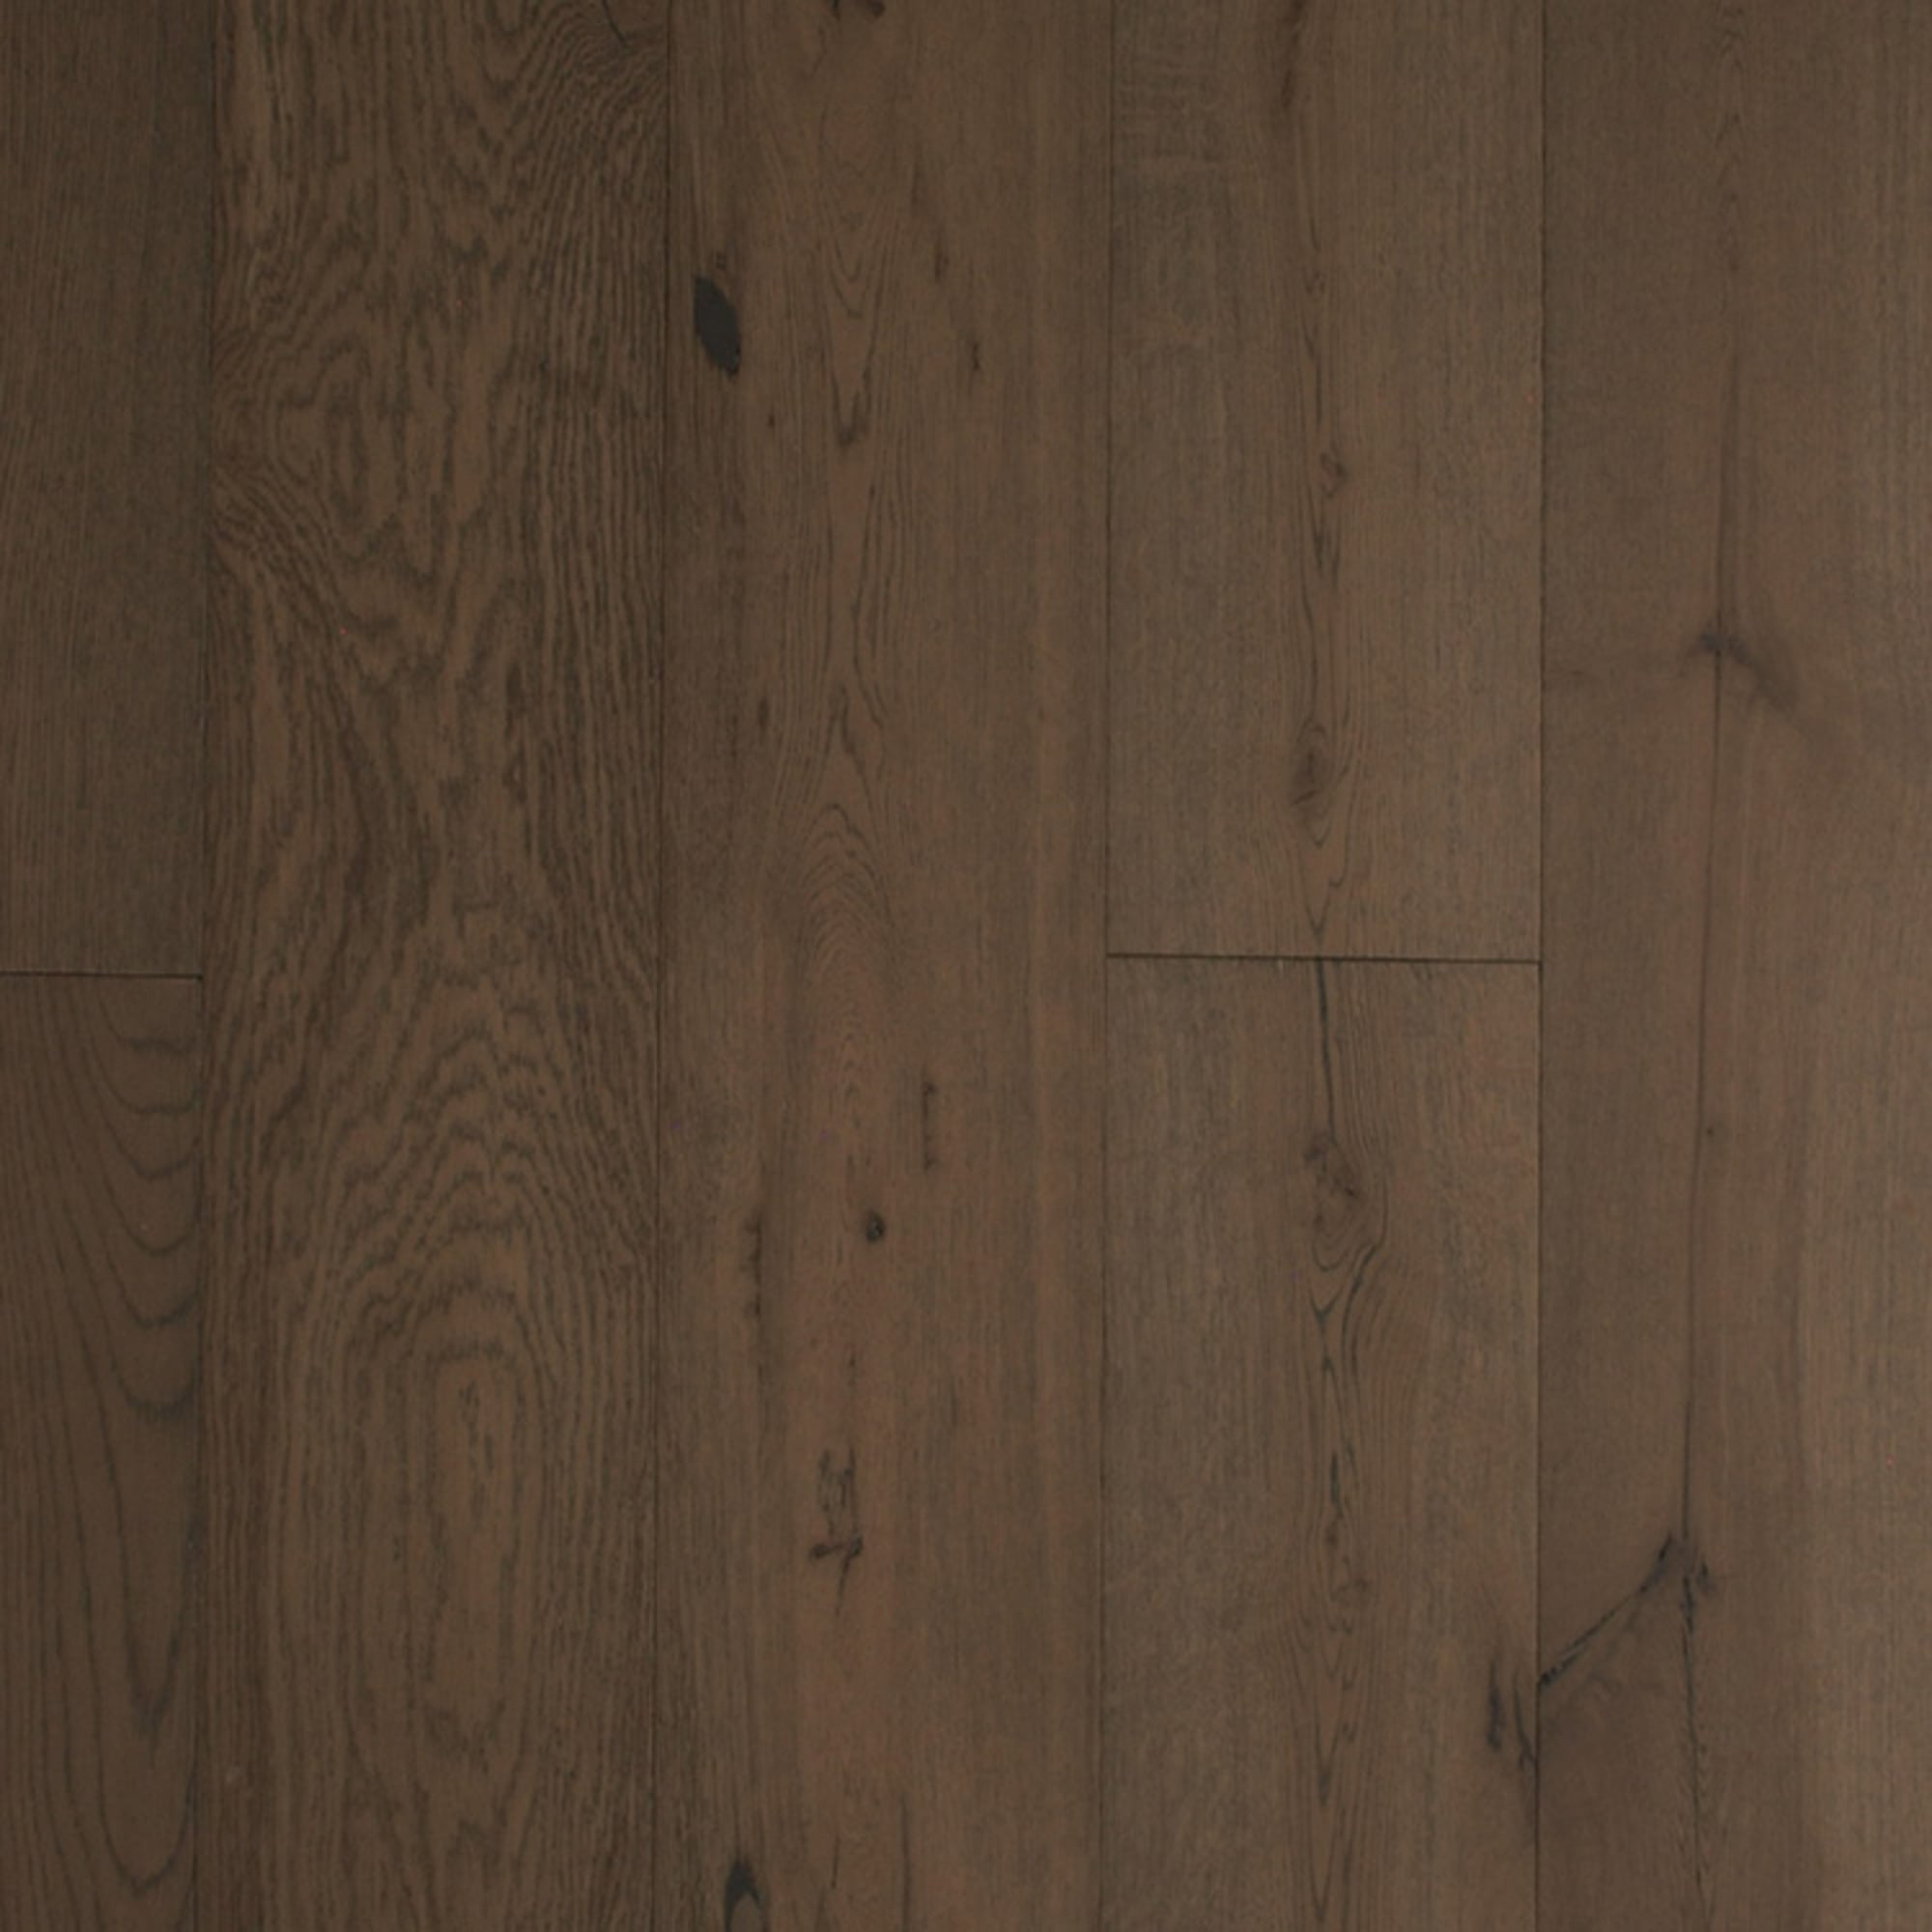 Wood flooring 14x189mm truffle brushed matt lacquered for Engineered oak flooring